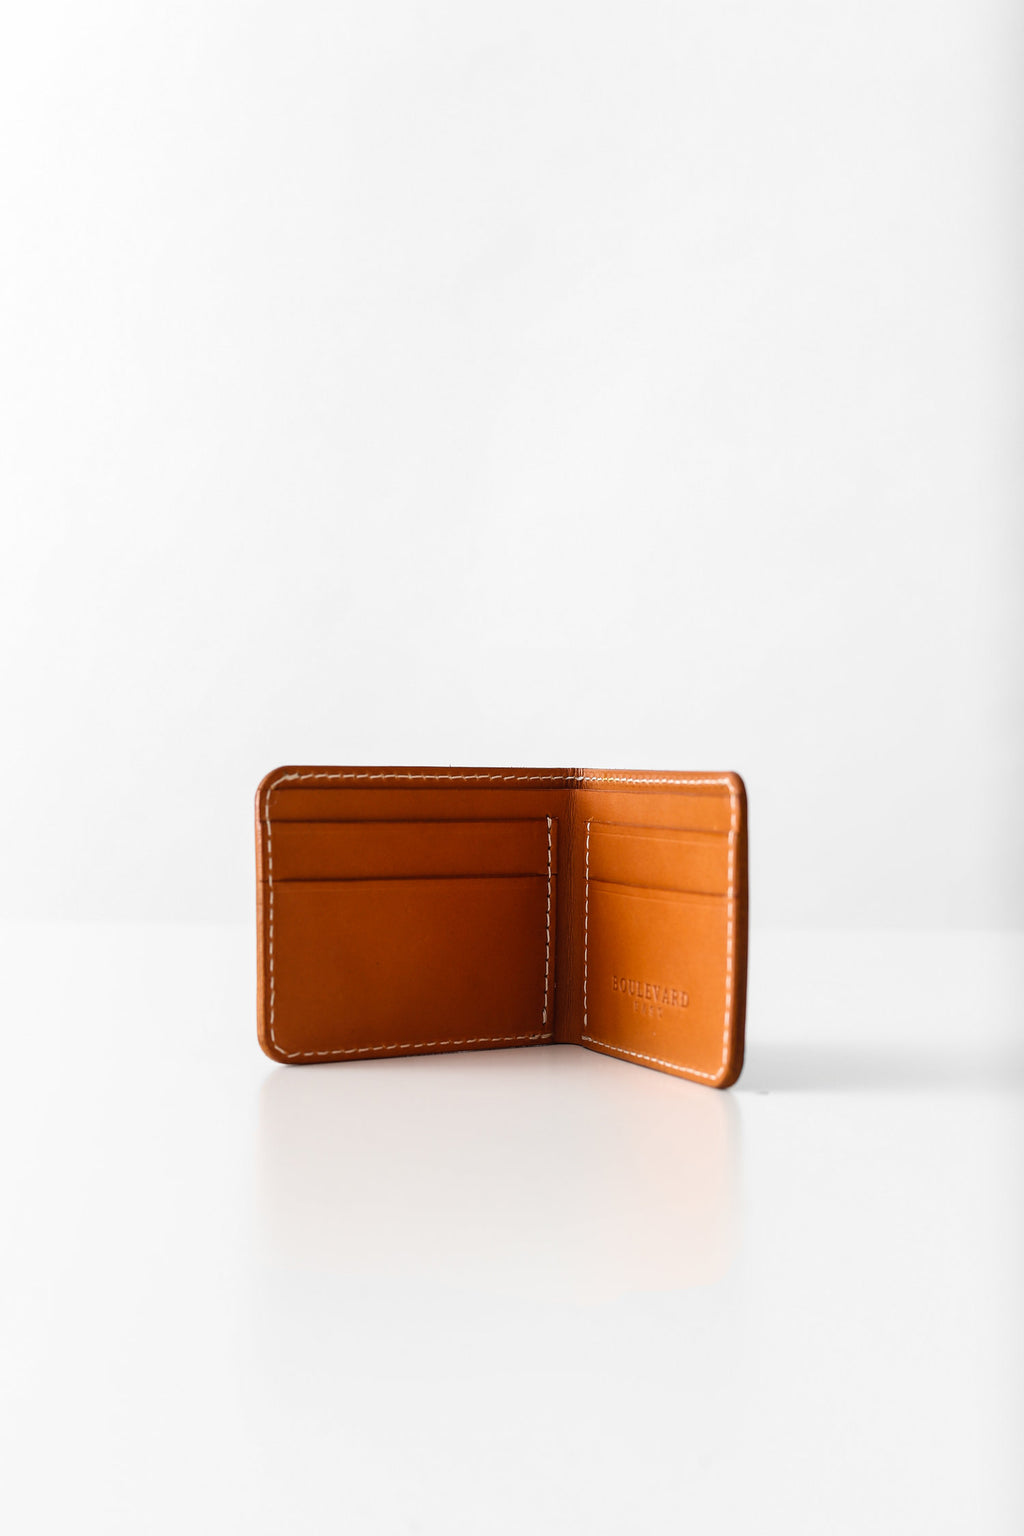 BILL FOLD WALLET - EVERY*